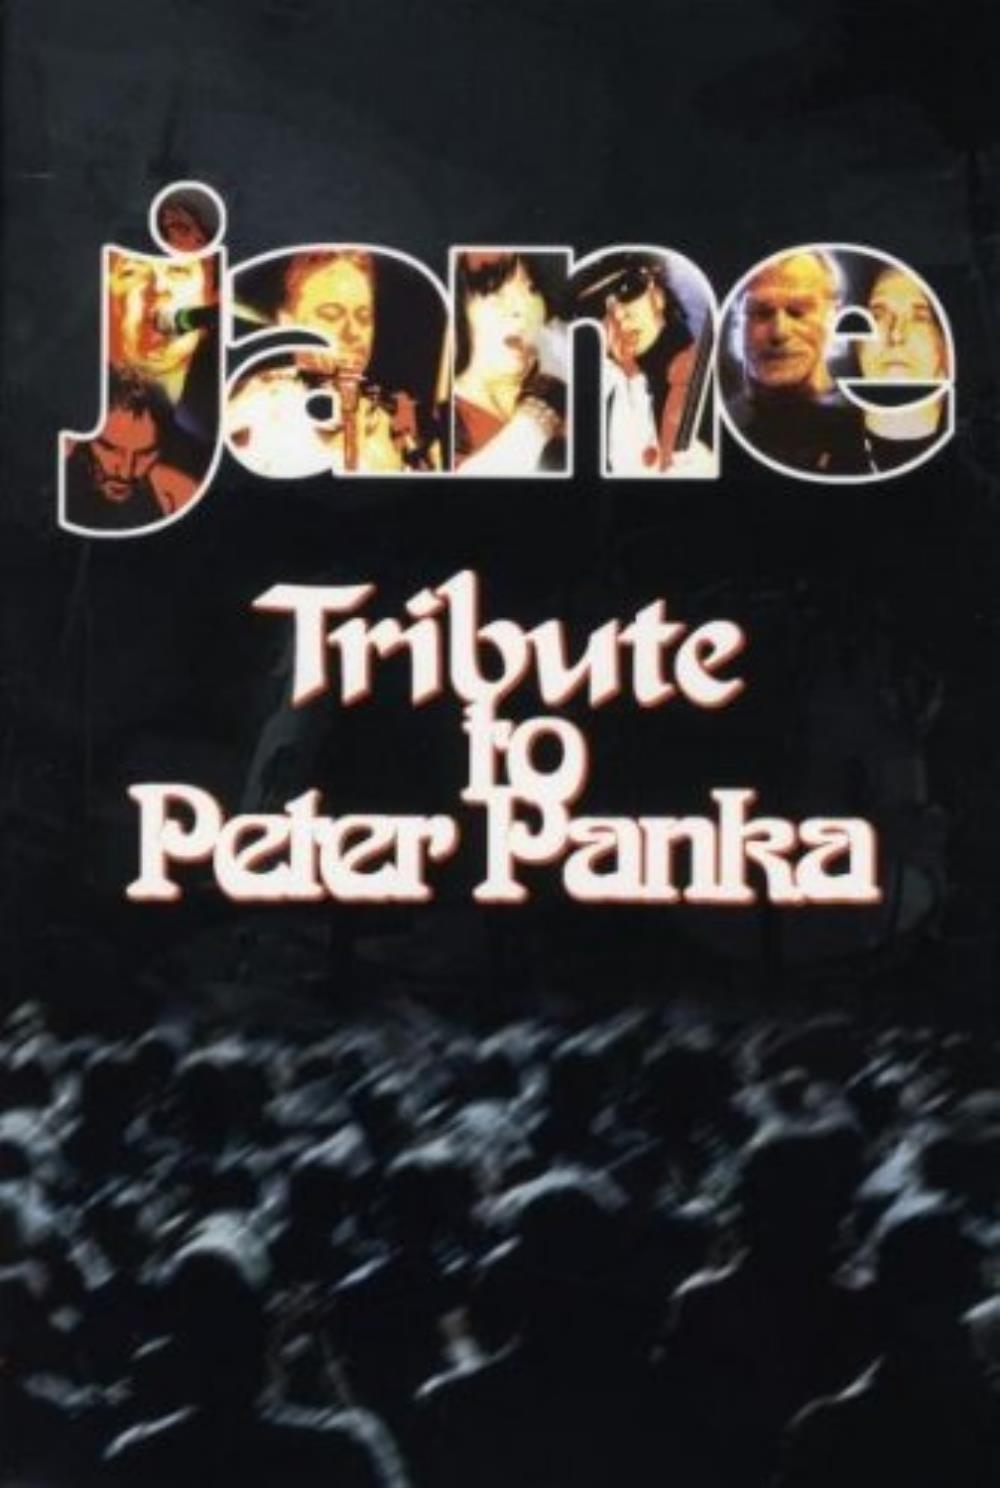 Jane Tribute To Peter Panka album cover